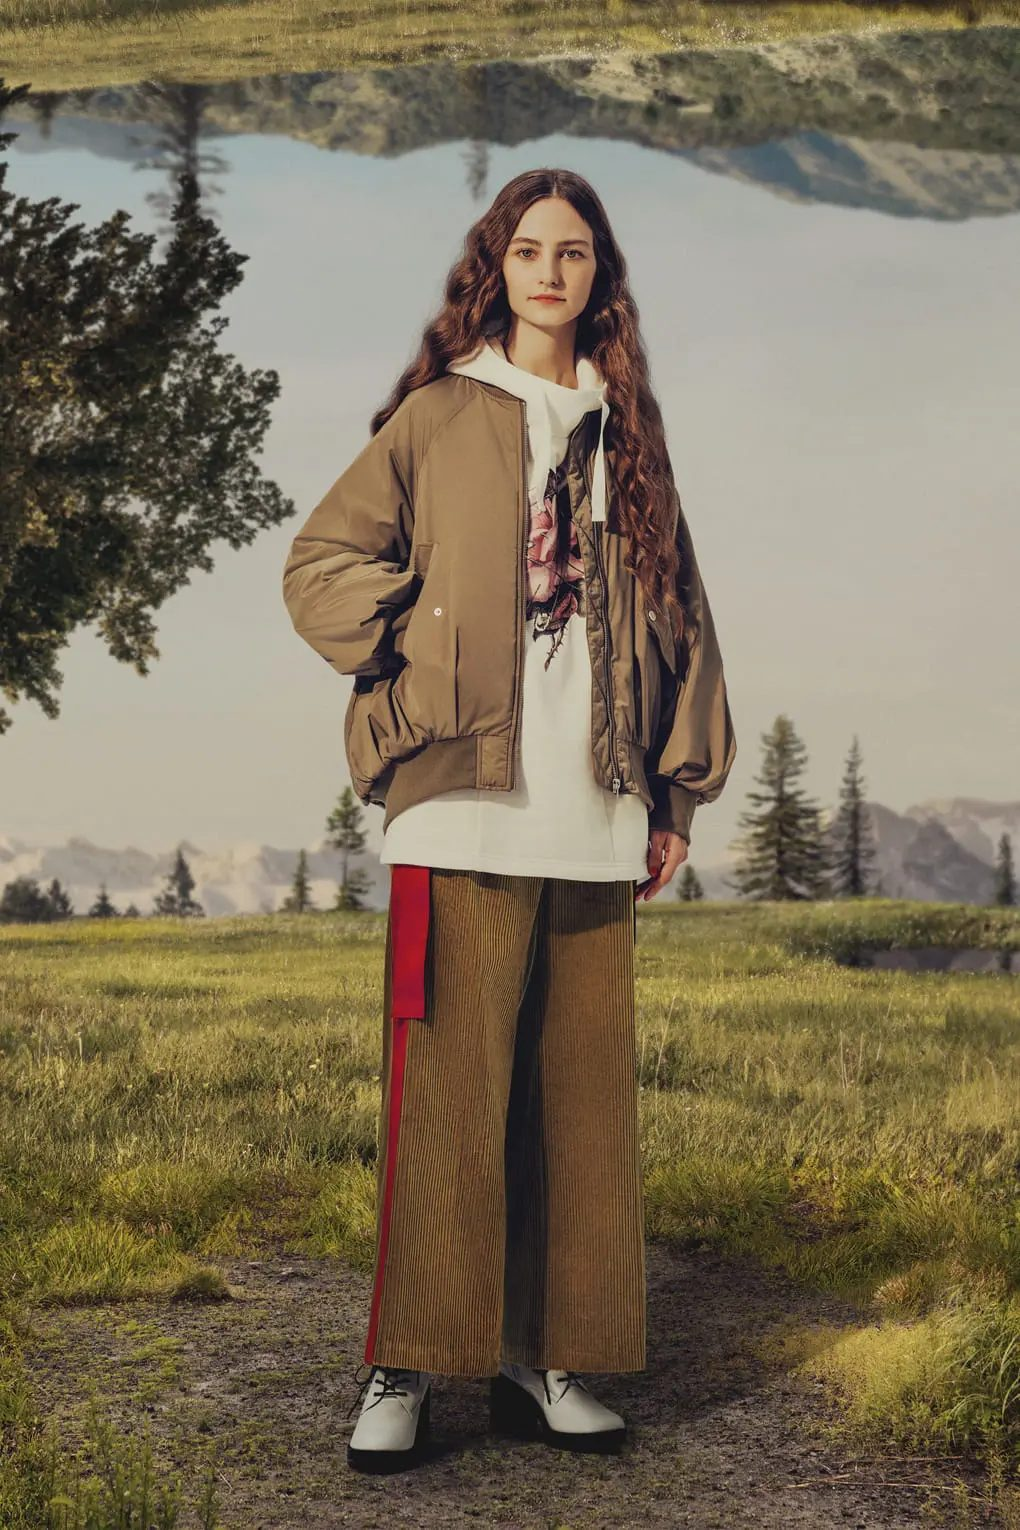 gu-undercover-2nd-collaboration-21aw-release-20211029-lookbook